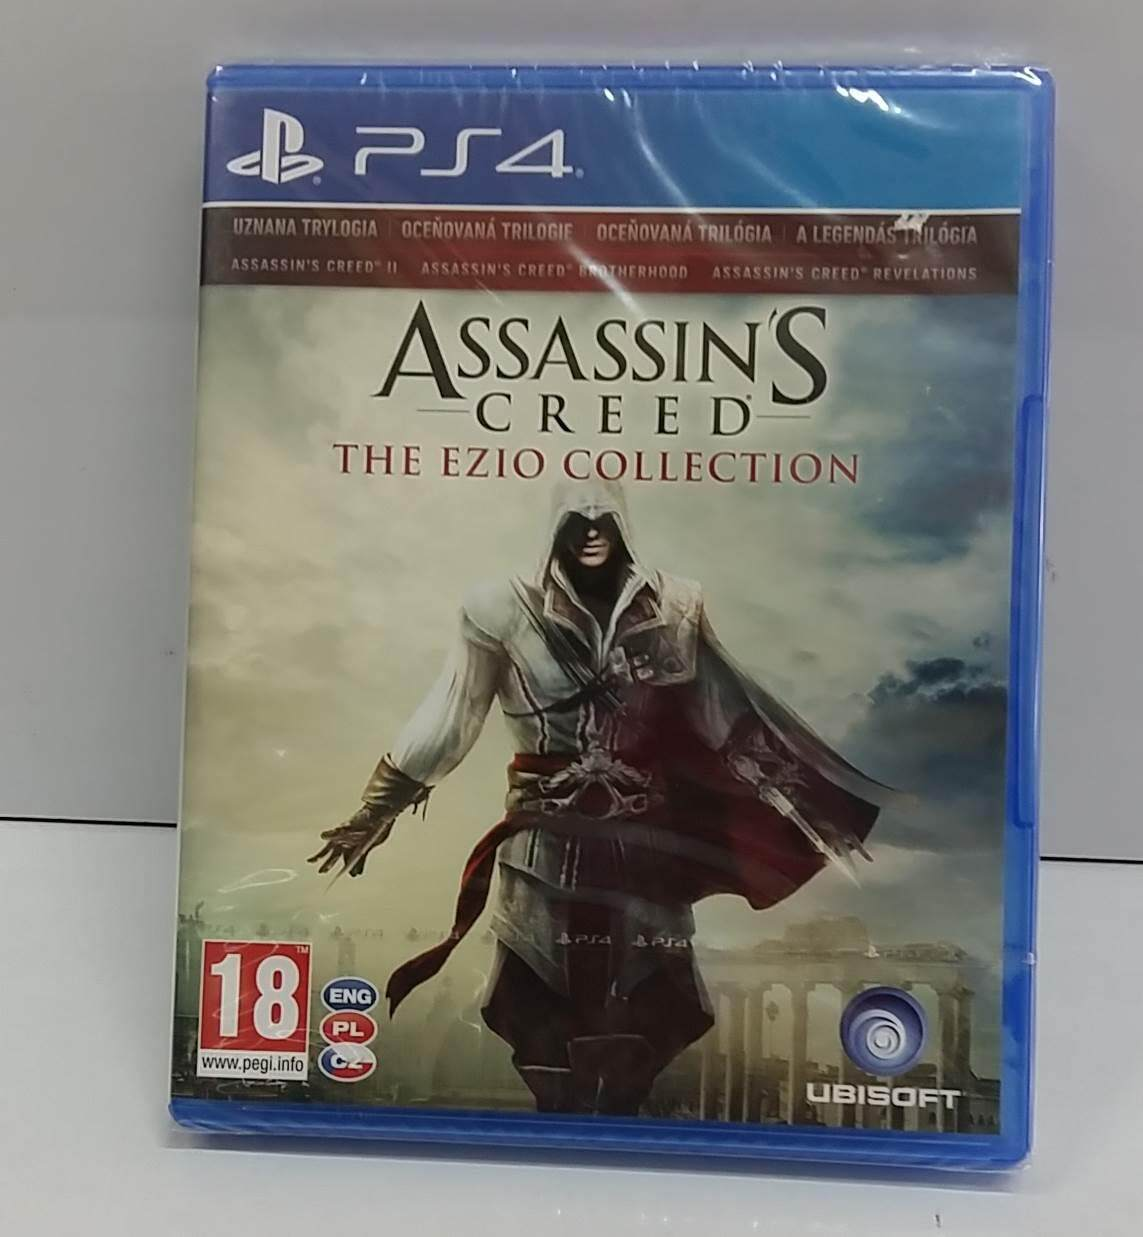 PS4 Game Assassin's Creed The Ezio Collection [Z2 / NEW]